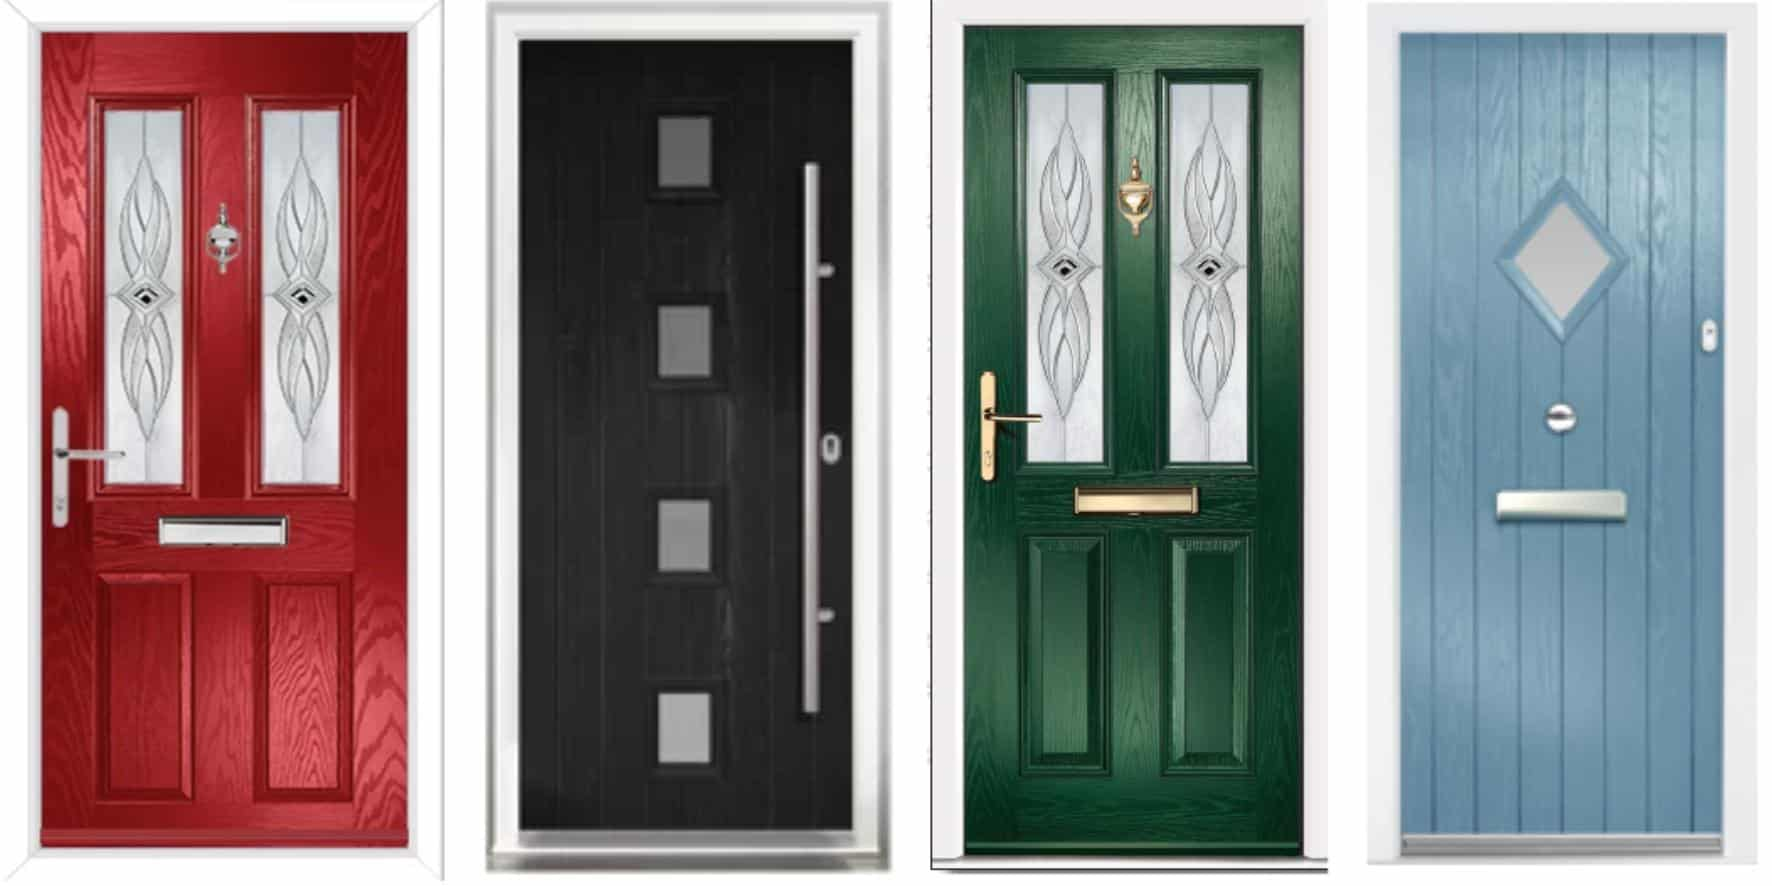 Dropped Composite Door Realignment, multi point lock repair and replacement door handles